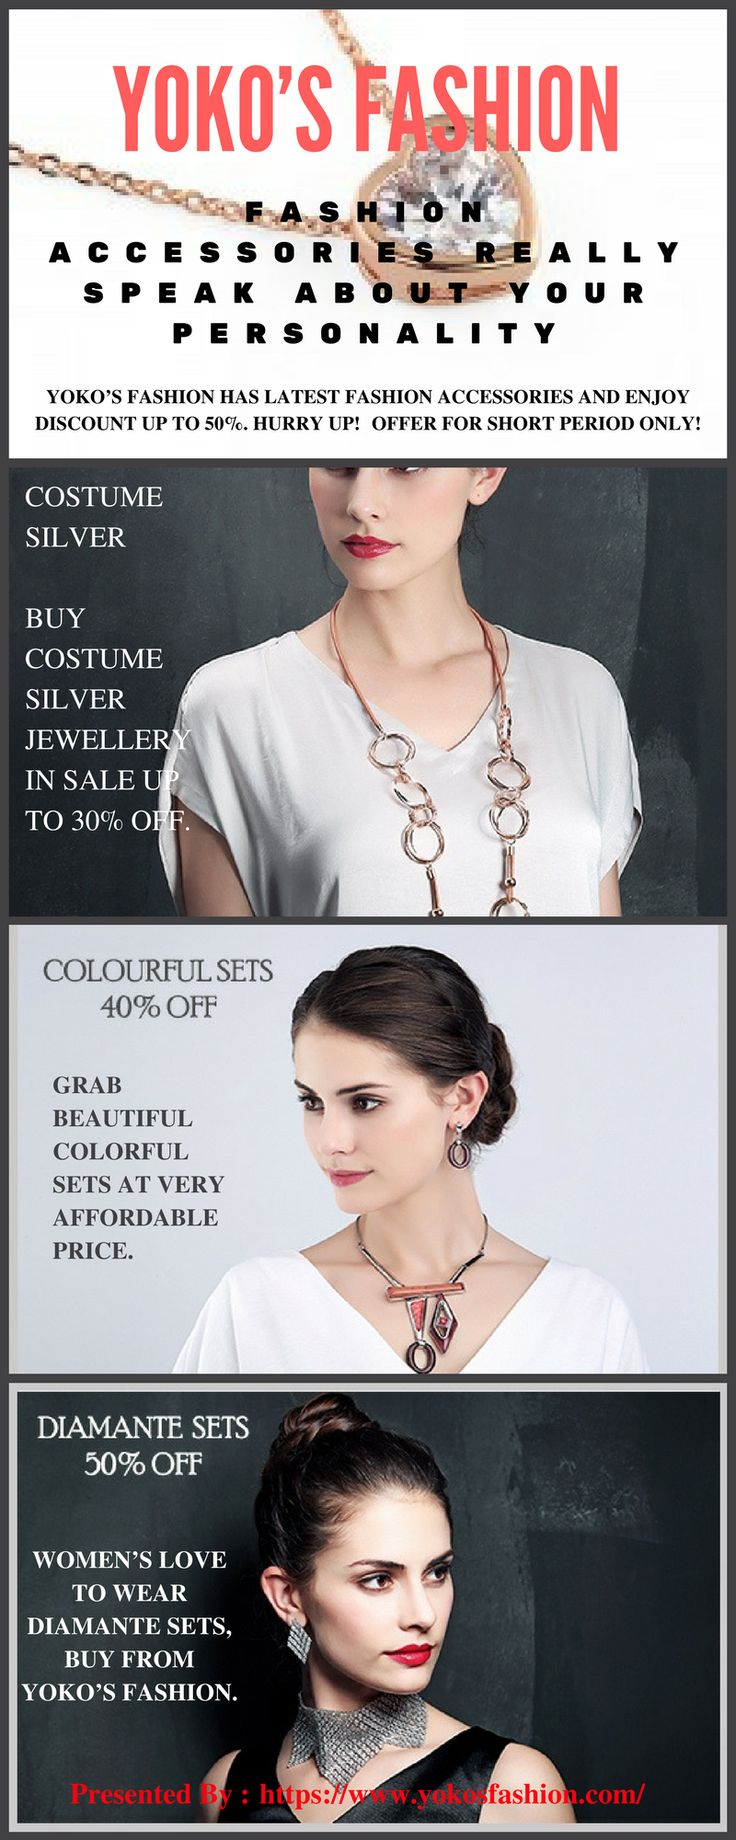 You can easily buy all the jewellery items such as necklaces, earrings, rings and much more from Yoko's Fashion at a very affordable price. Online shopping is easier as well as convenient. You can buy anytime and from anywhere what you want.Yoko's Fashion is an accessories wholesaler in Manchester.